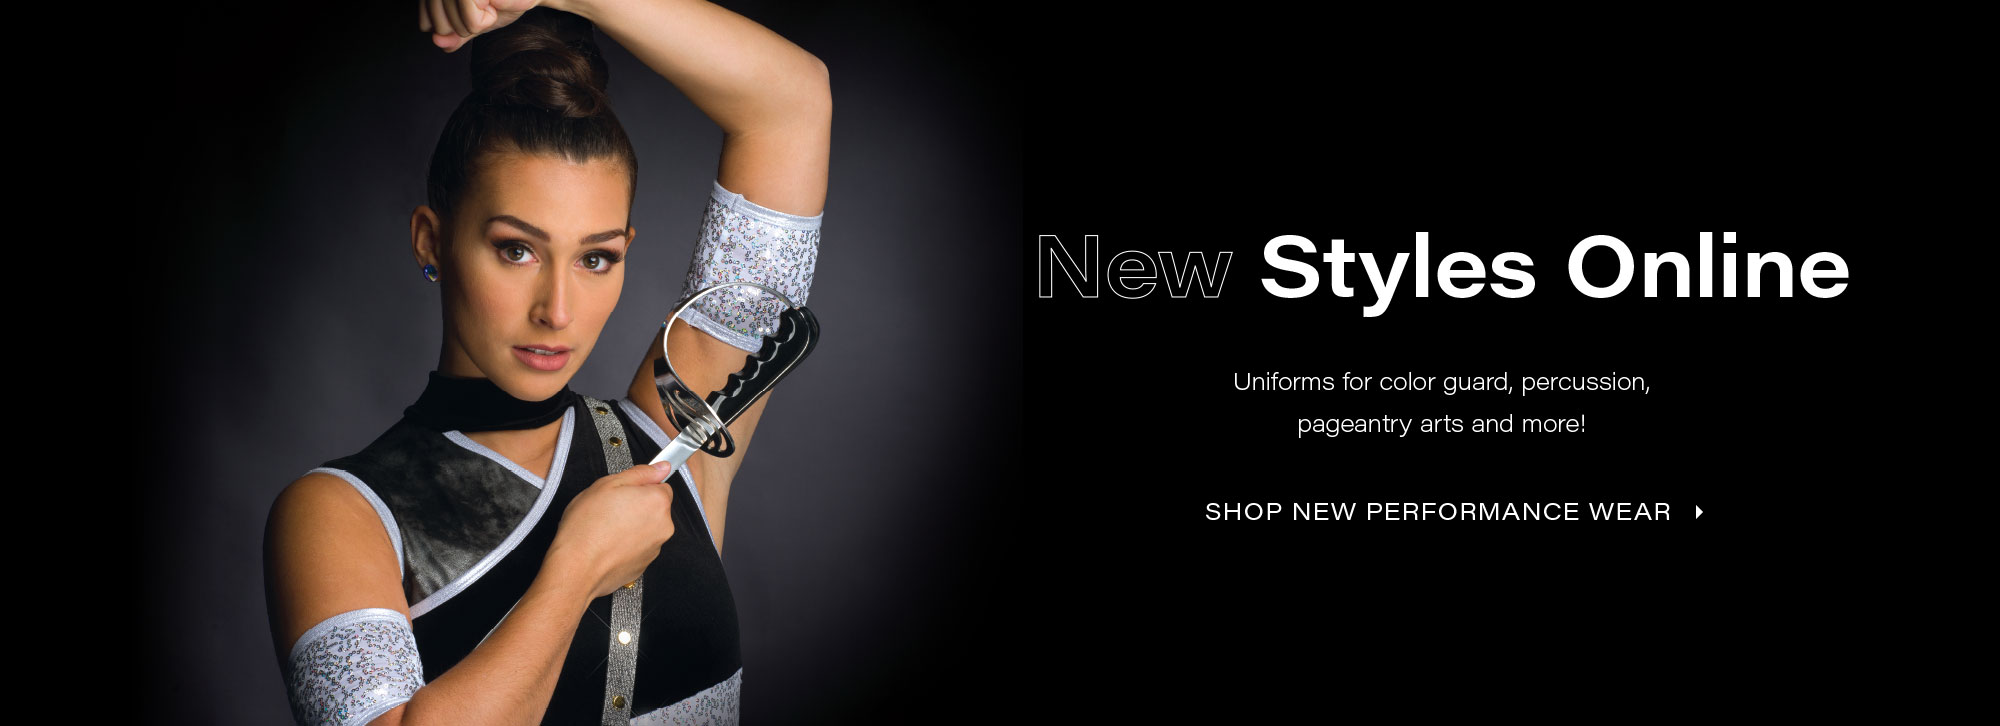 Shop new styles online now!